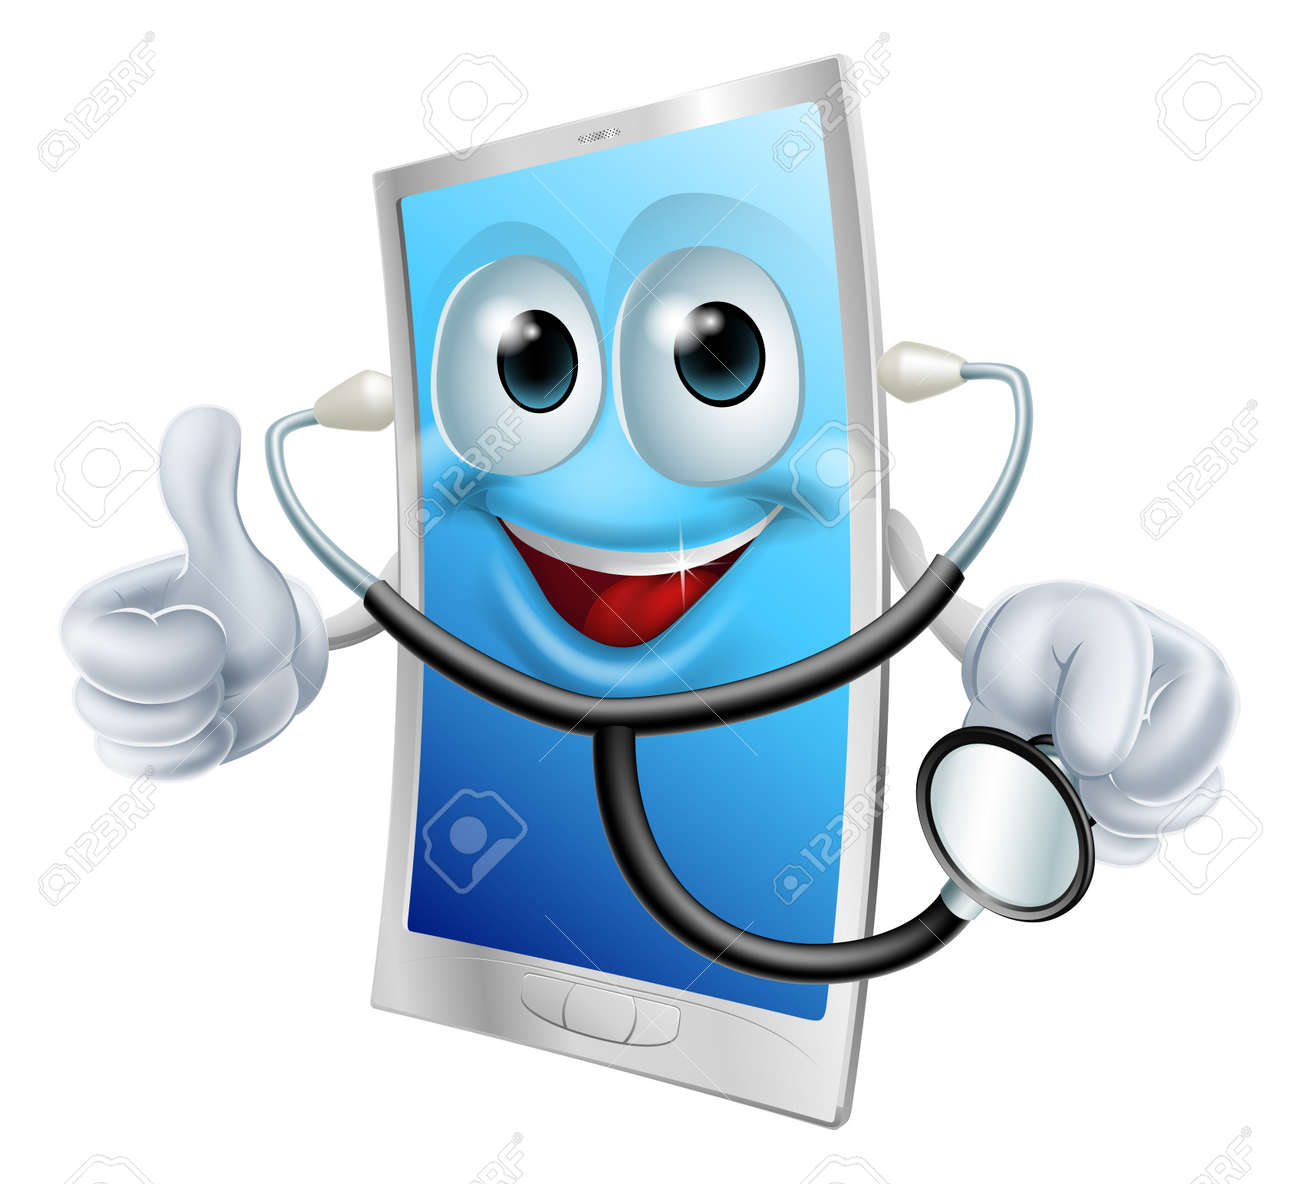 Illustration of a mobile phone character holding a stethoscope - 25041385